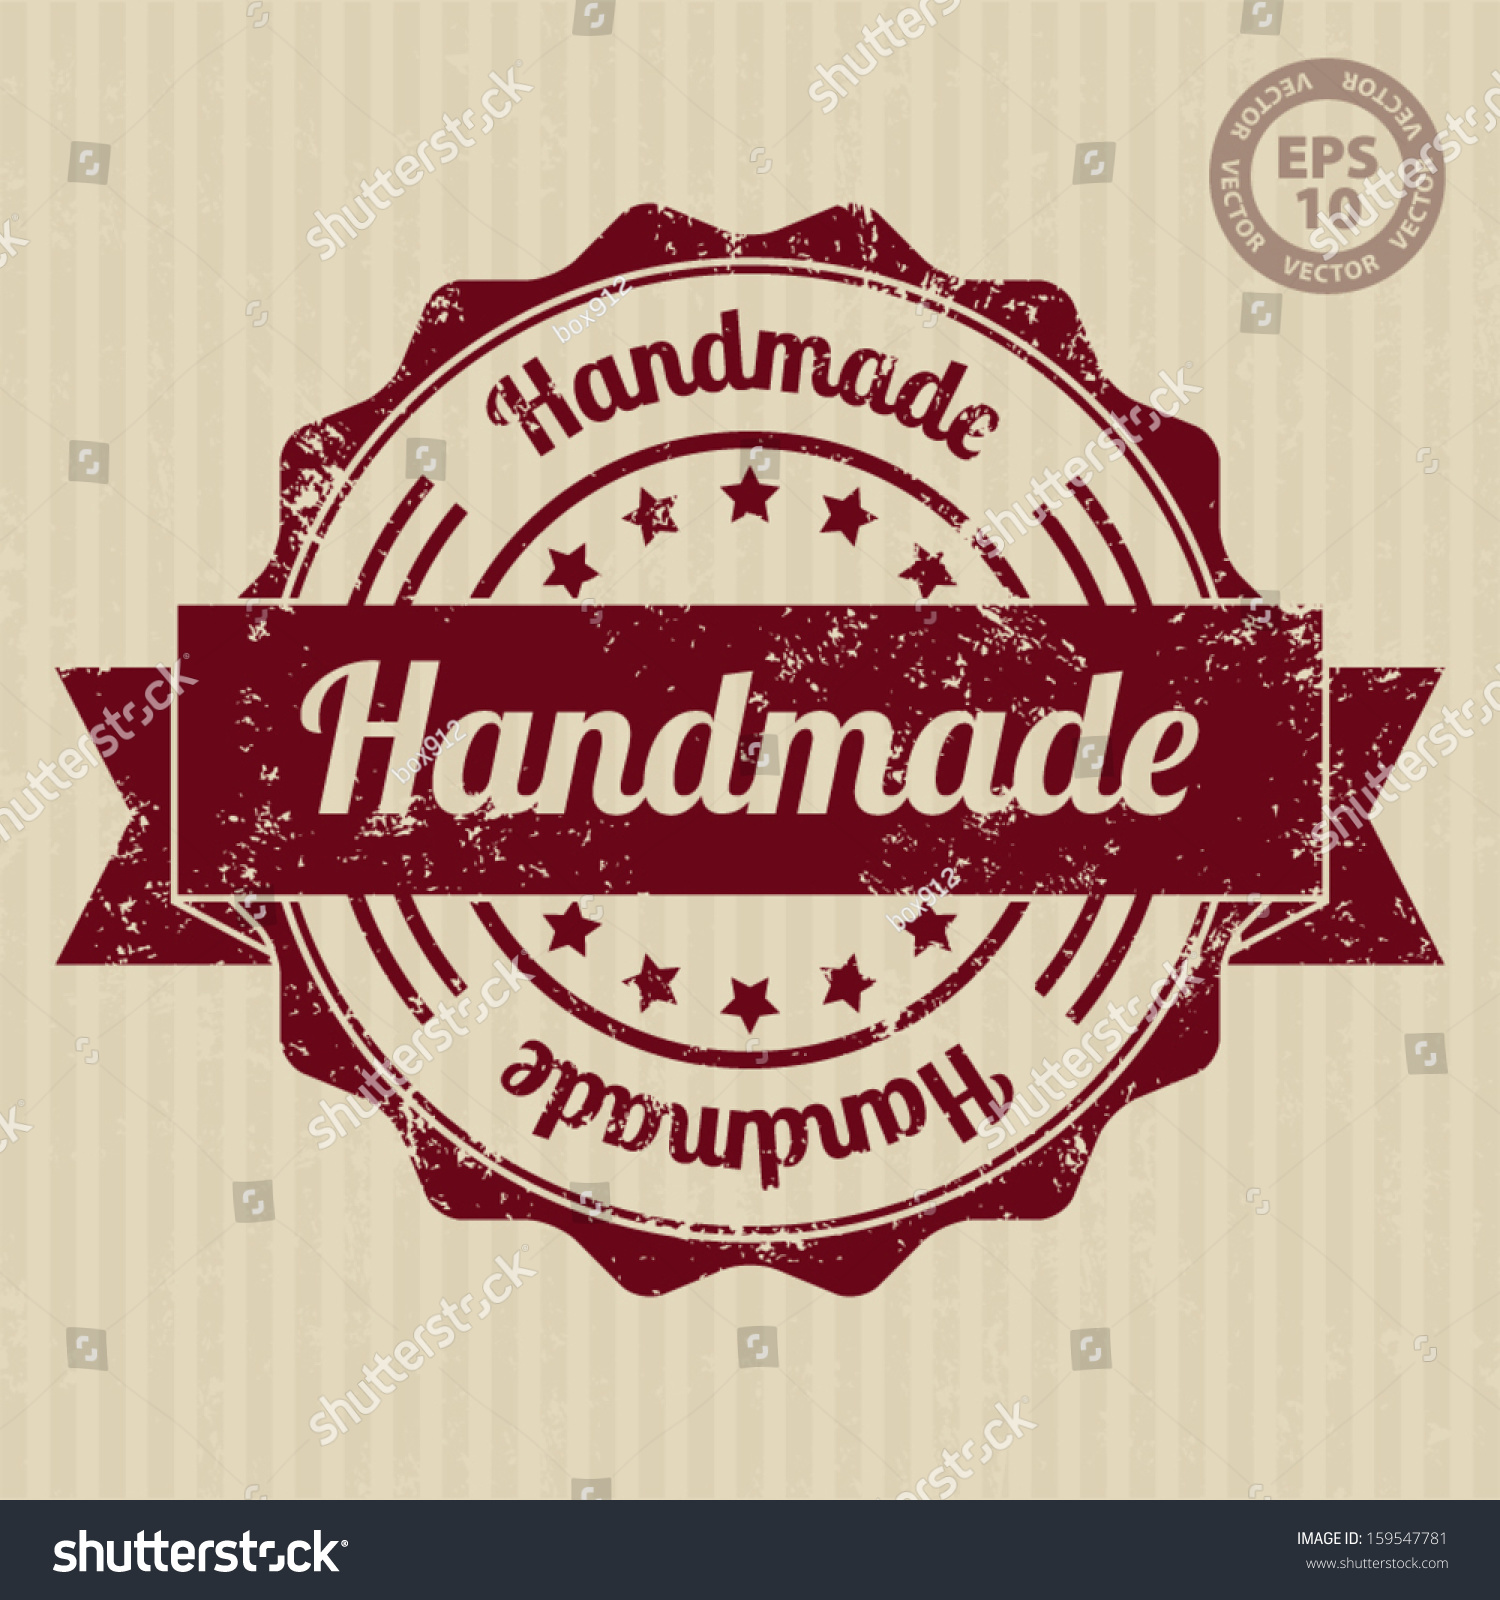 Easy Hand Mades Stock Vector Handmade Vintage Stamp With Grunge Vector